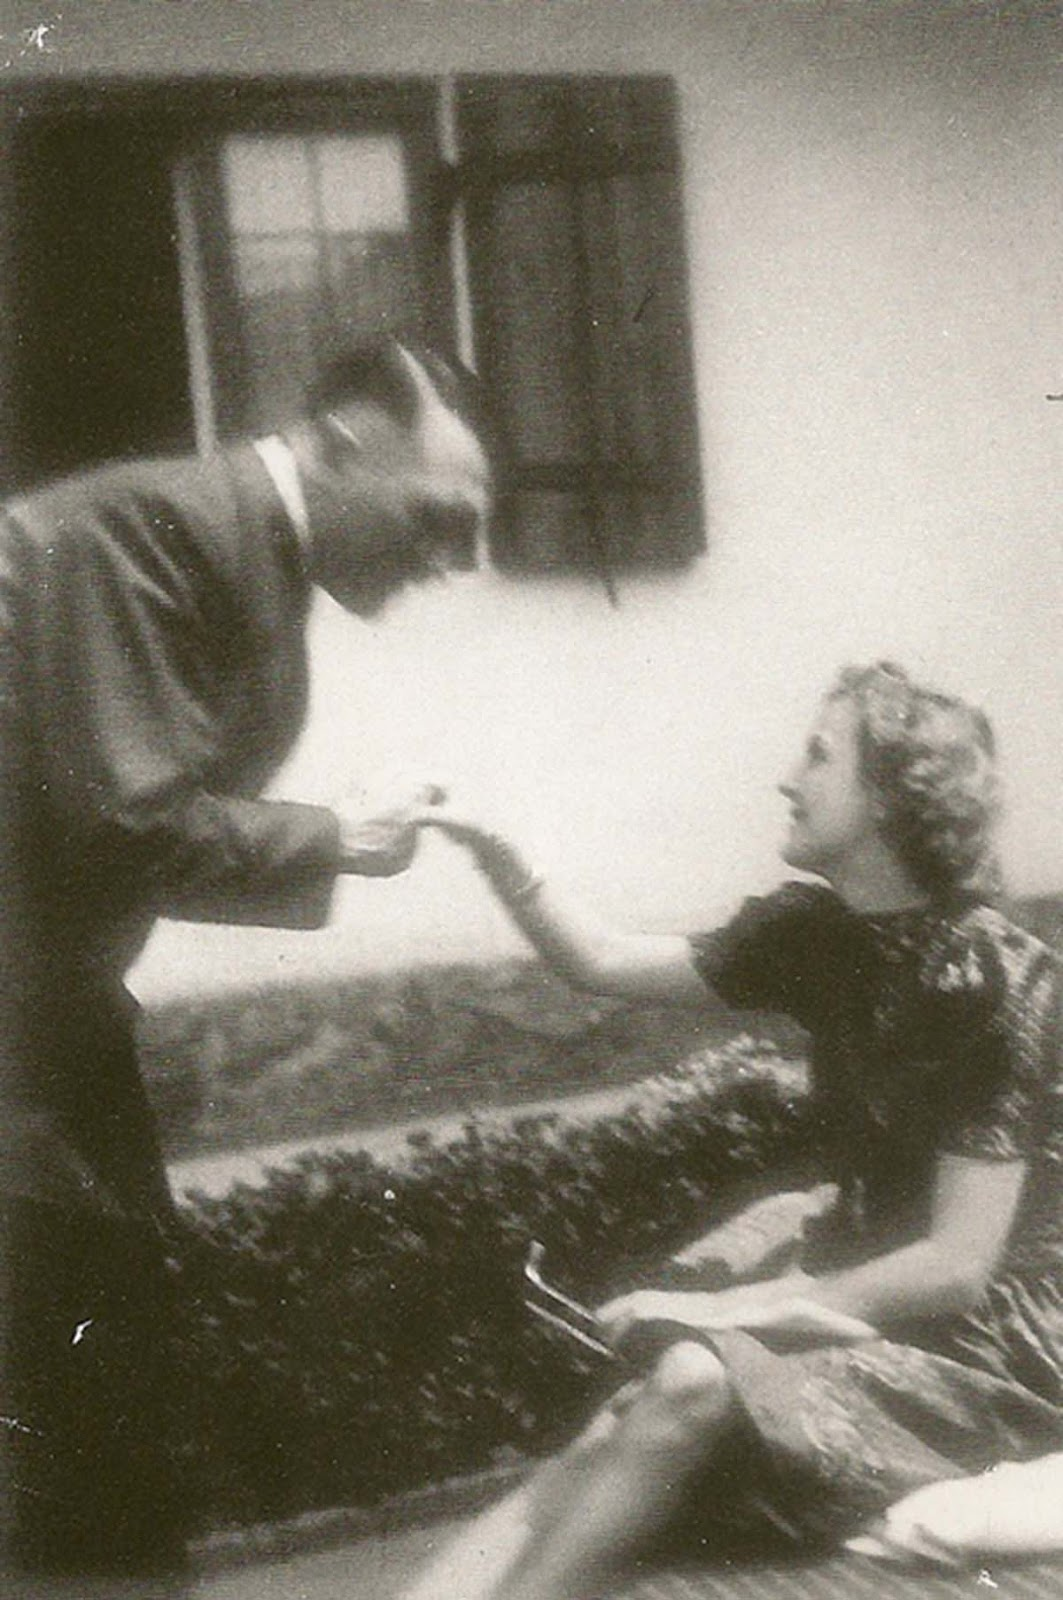 Hitler was very fond of her, and worried when she participated in sports or was late returning for tea.